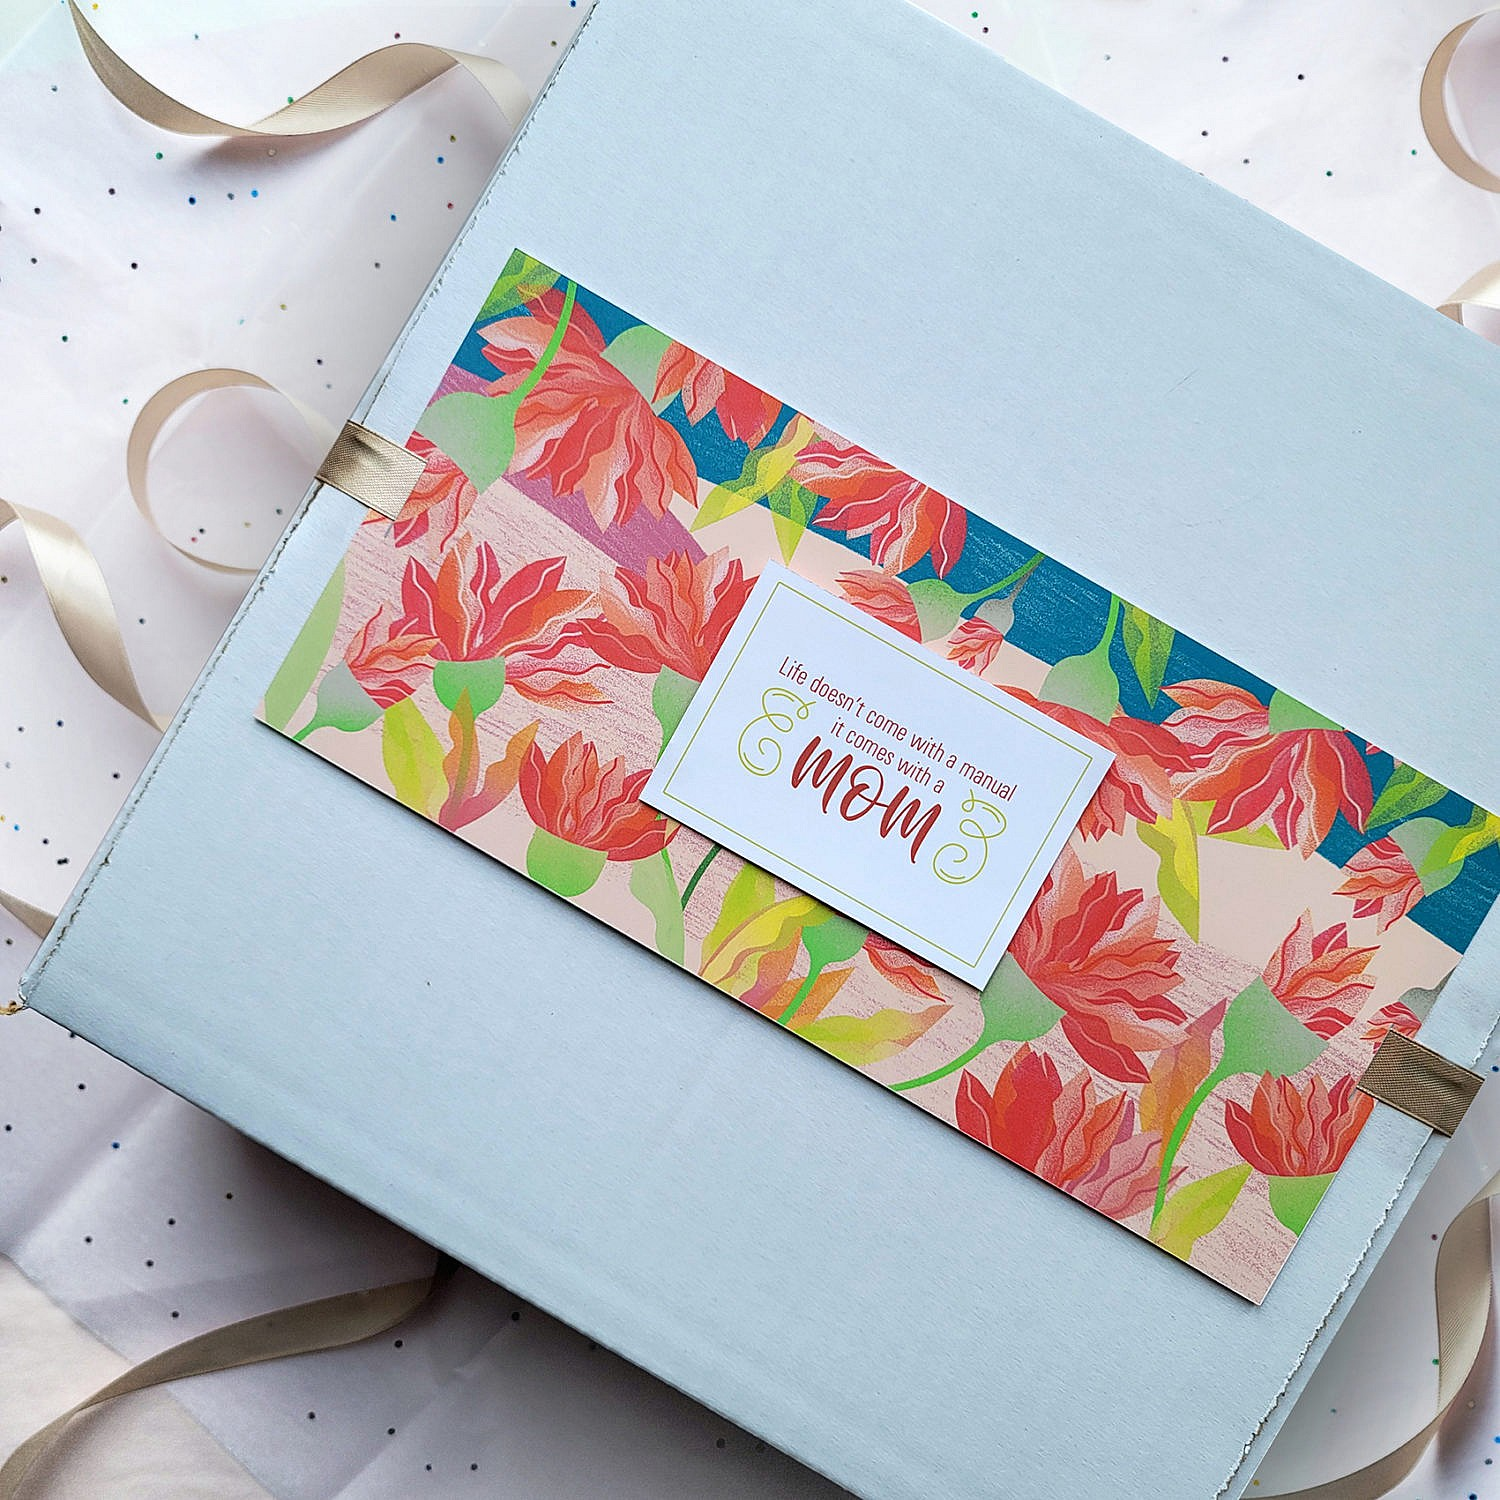 The image is showing a mother's day gift box which is wrapped beautifully.